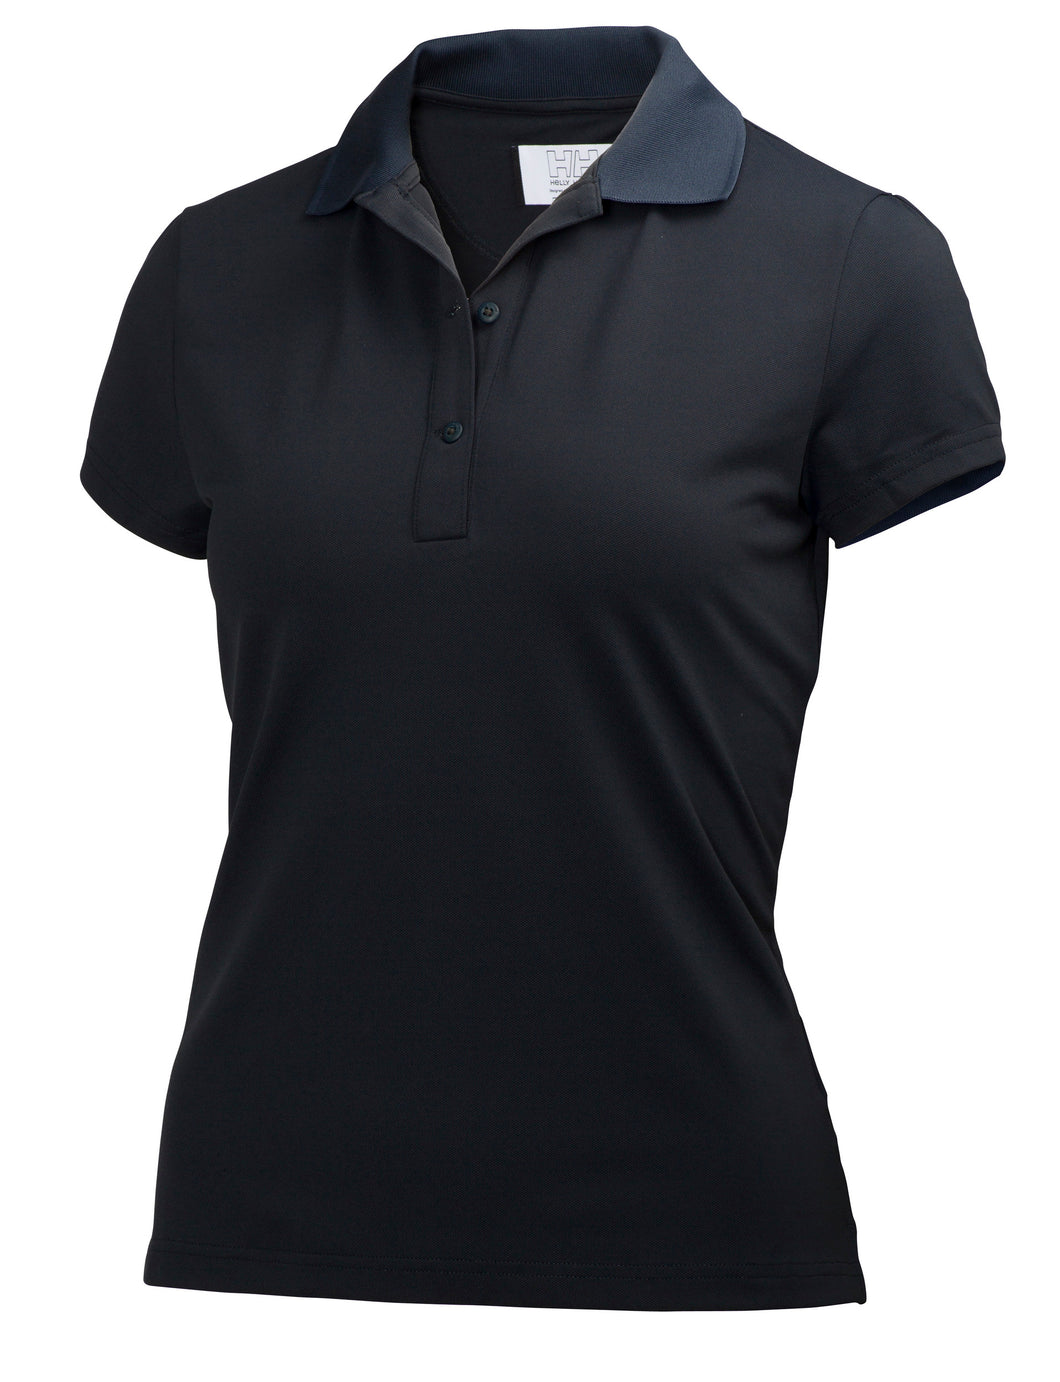 Helly Hansen Women's Crew Tech Polo